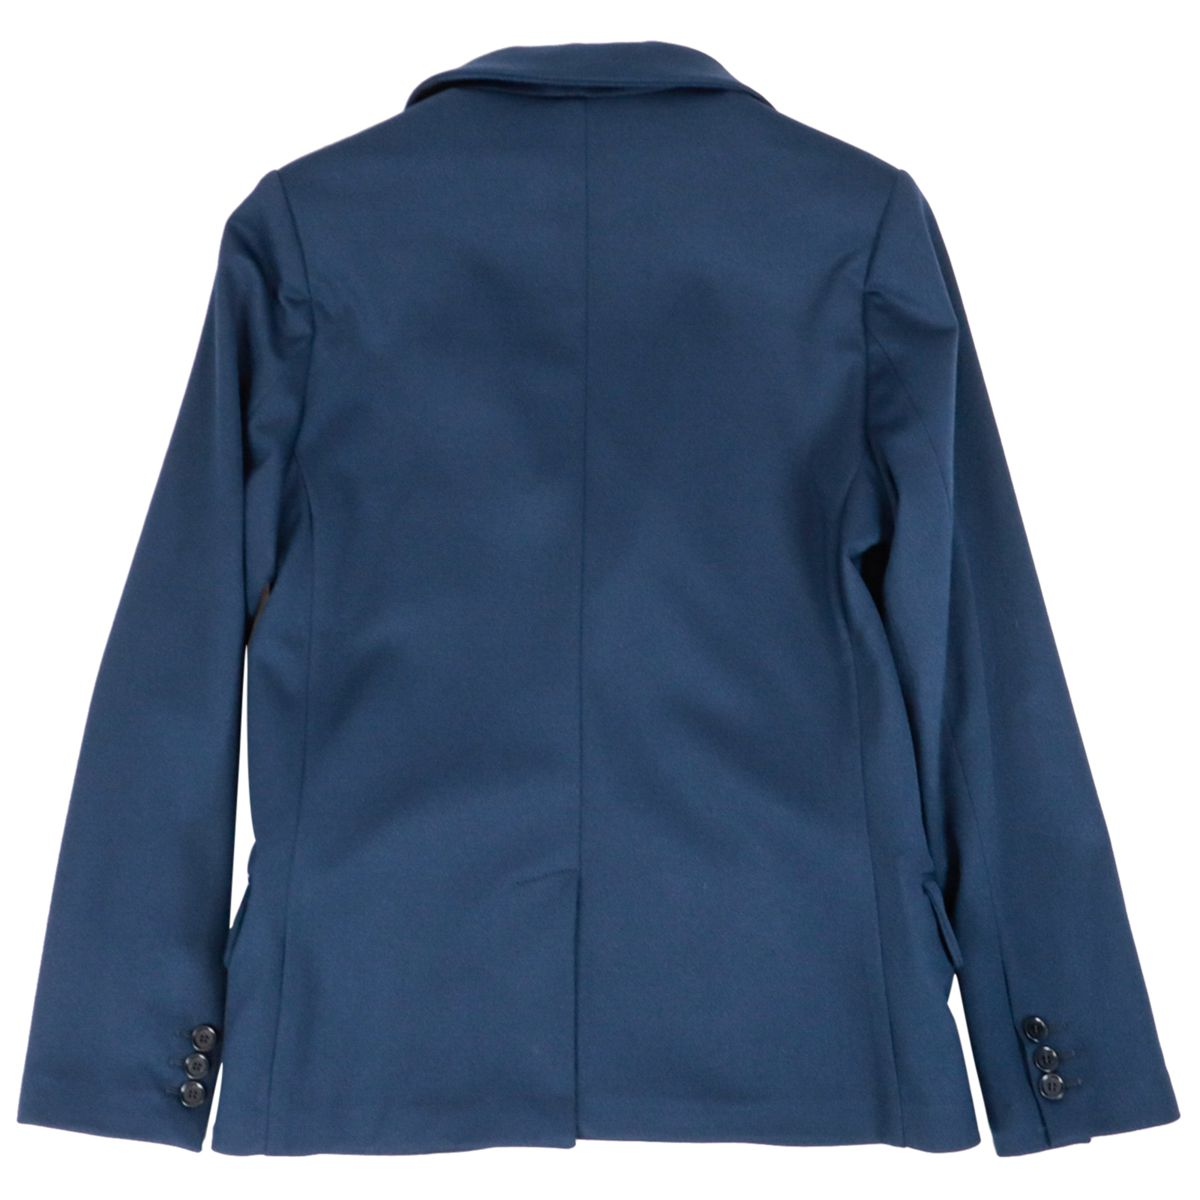 Two-button jacket in stretch viscose Navy Fay